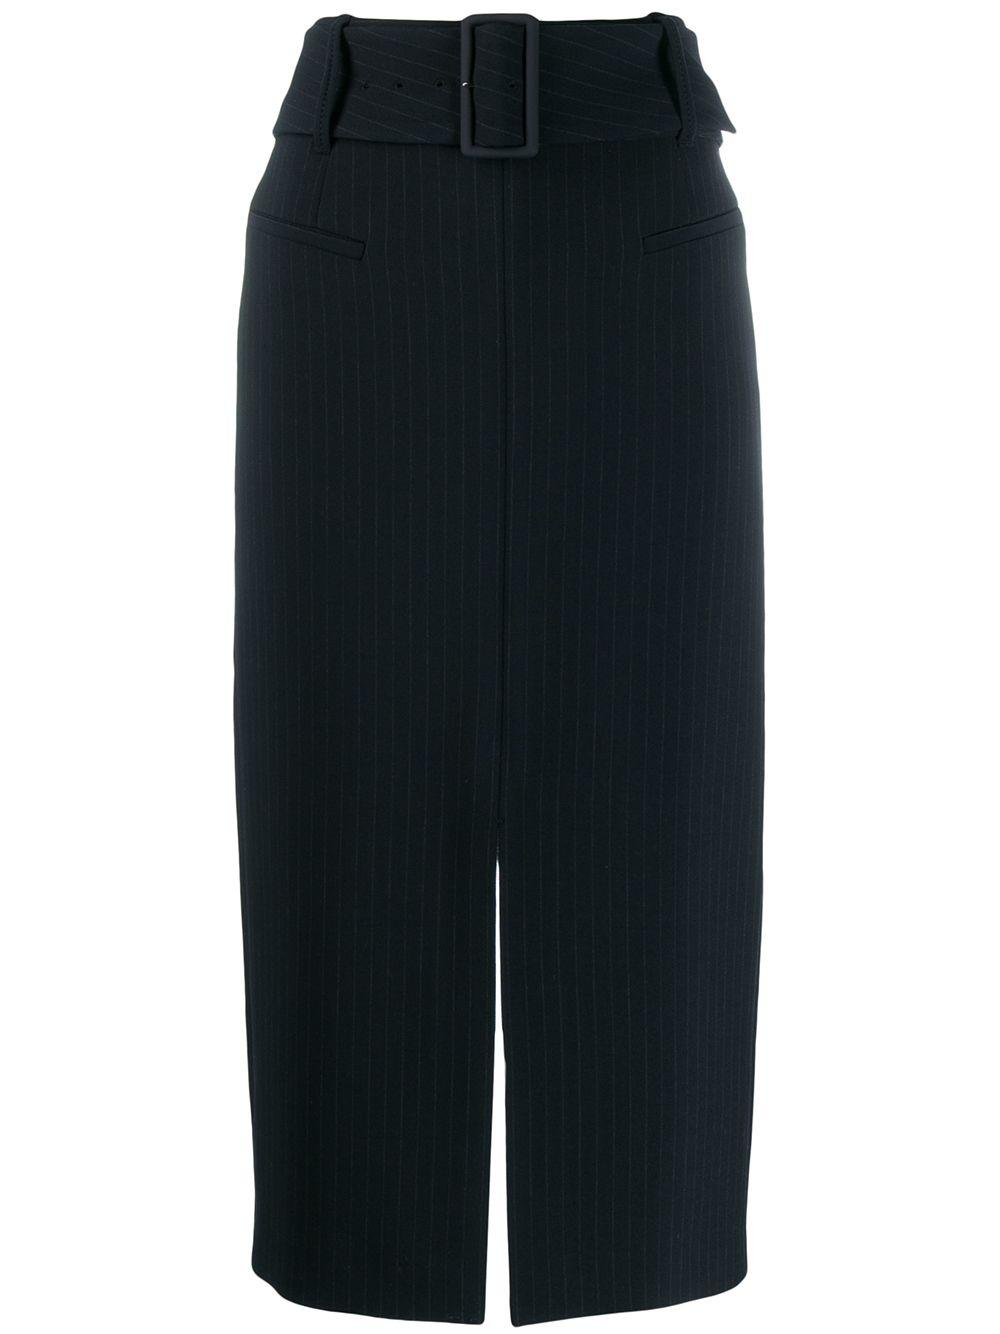 Distinctive Stripes Belted Pencil Skirt